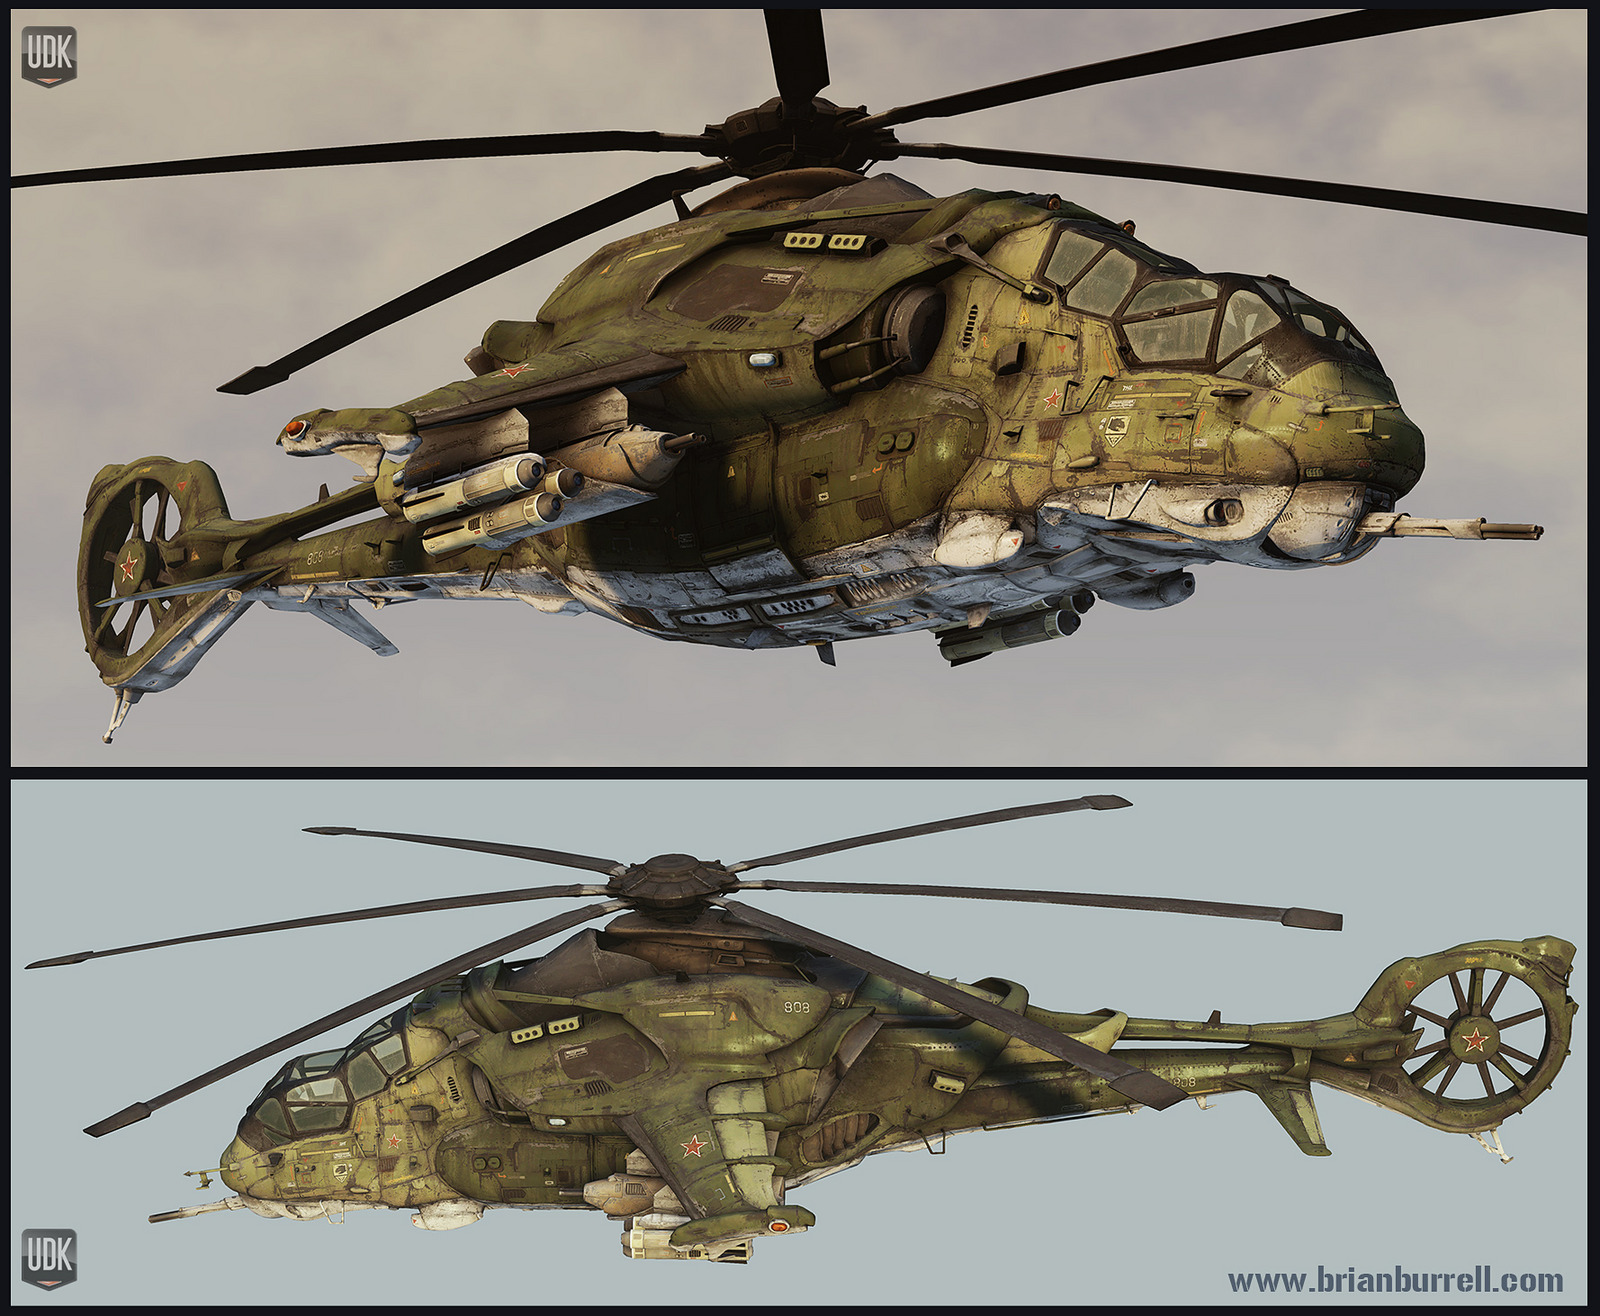 airwolf tv show vehicles with Military Art on Video Stingray Tv Series Intro Is Quite The 80s Flashback further Blue Thunder 3D 21814470 further 451626668853960541 also Airwolf additionally Blue Thunder 3D 21814470.